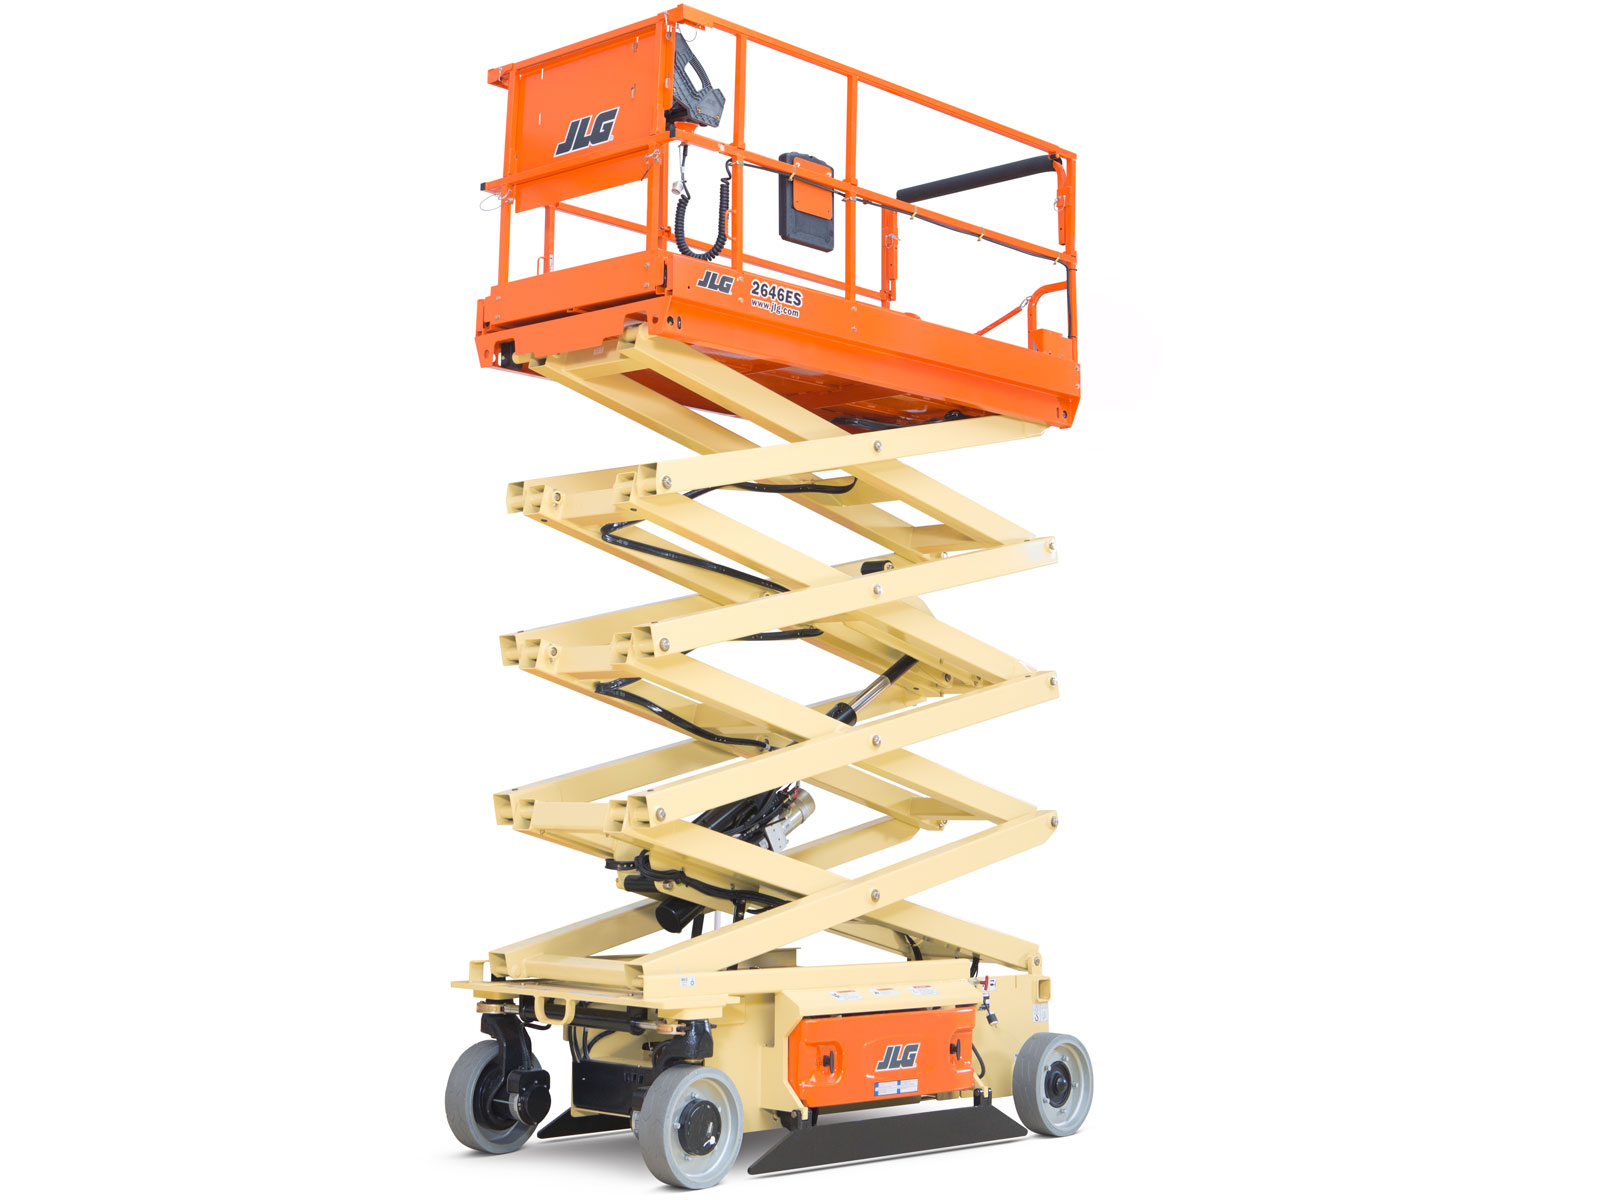 2646es Electric Scissor Lift Jlg